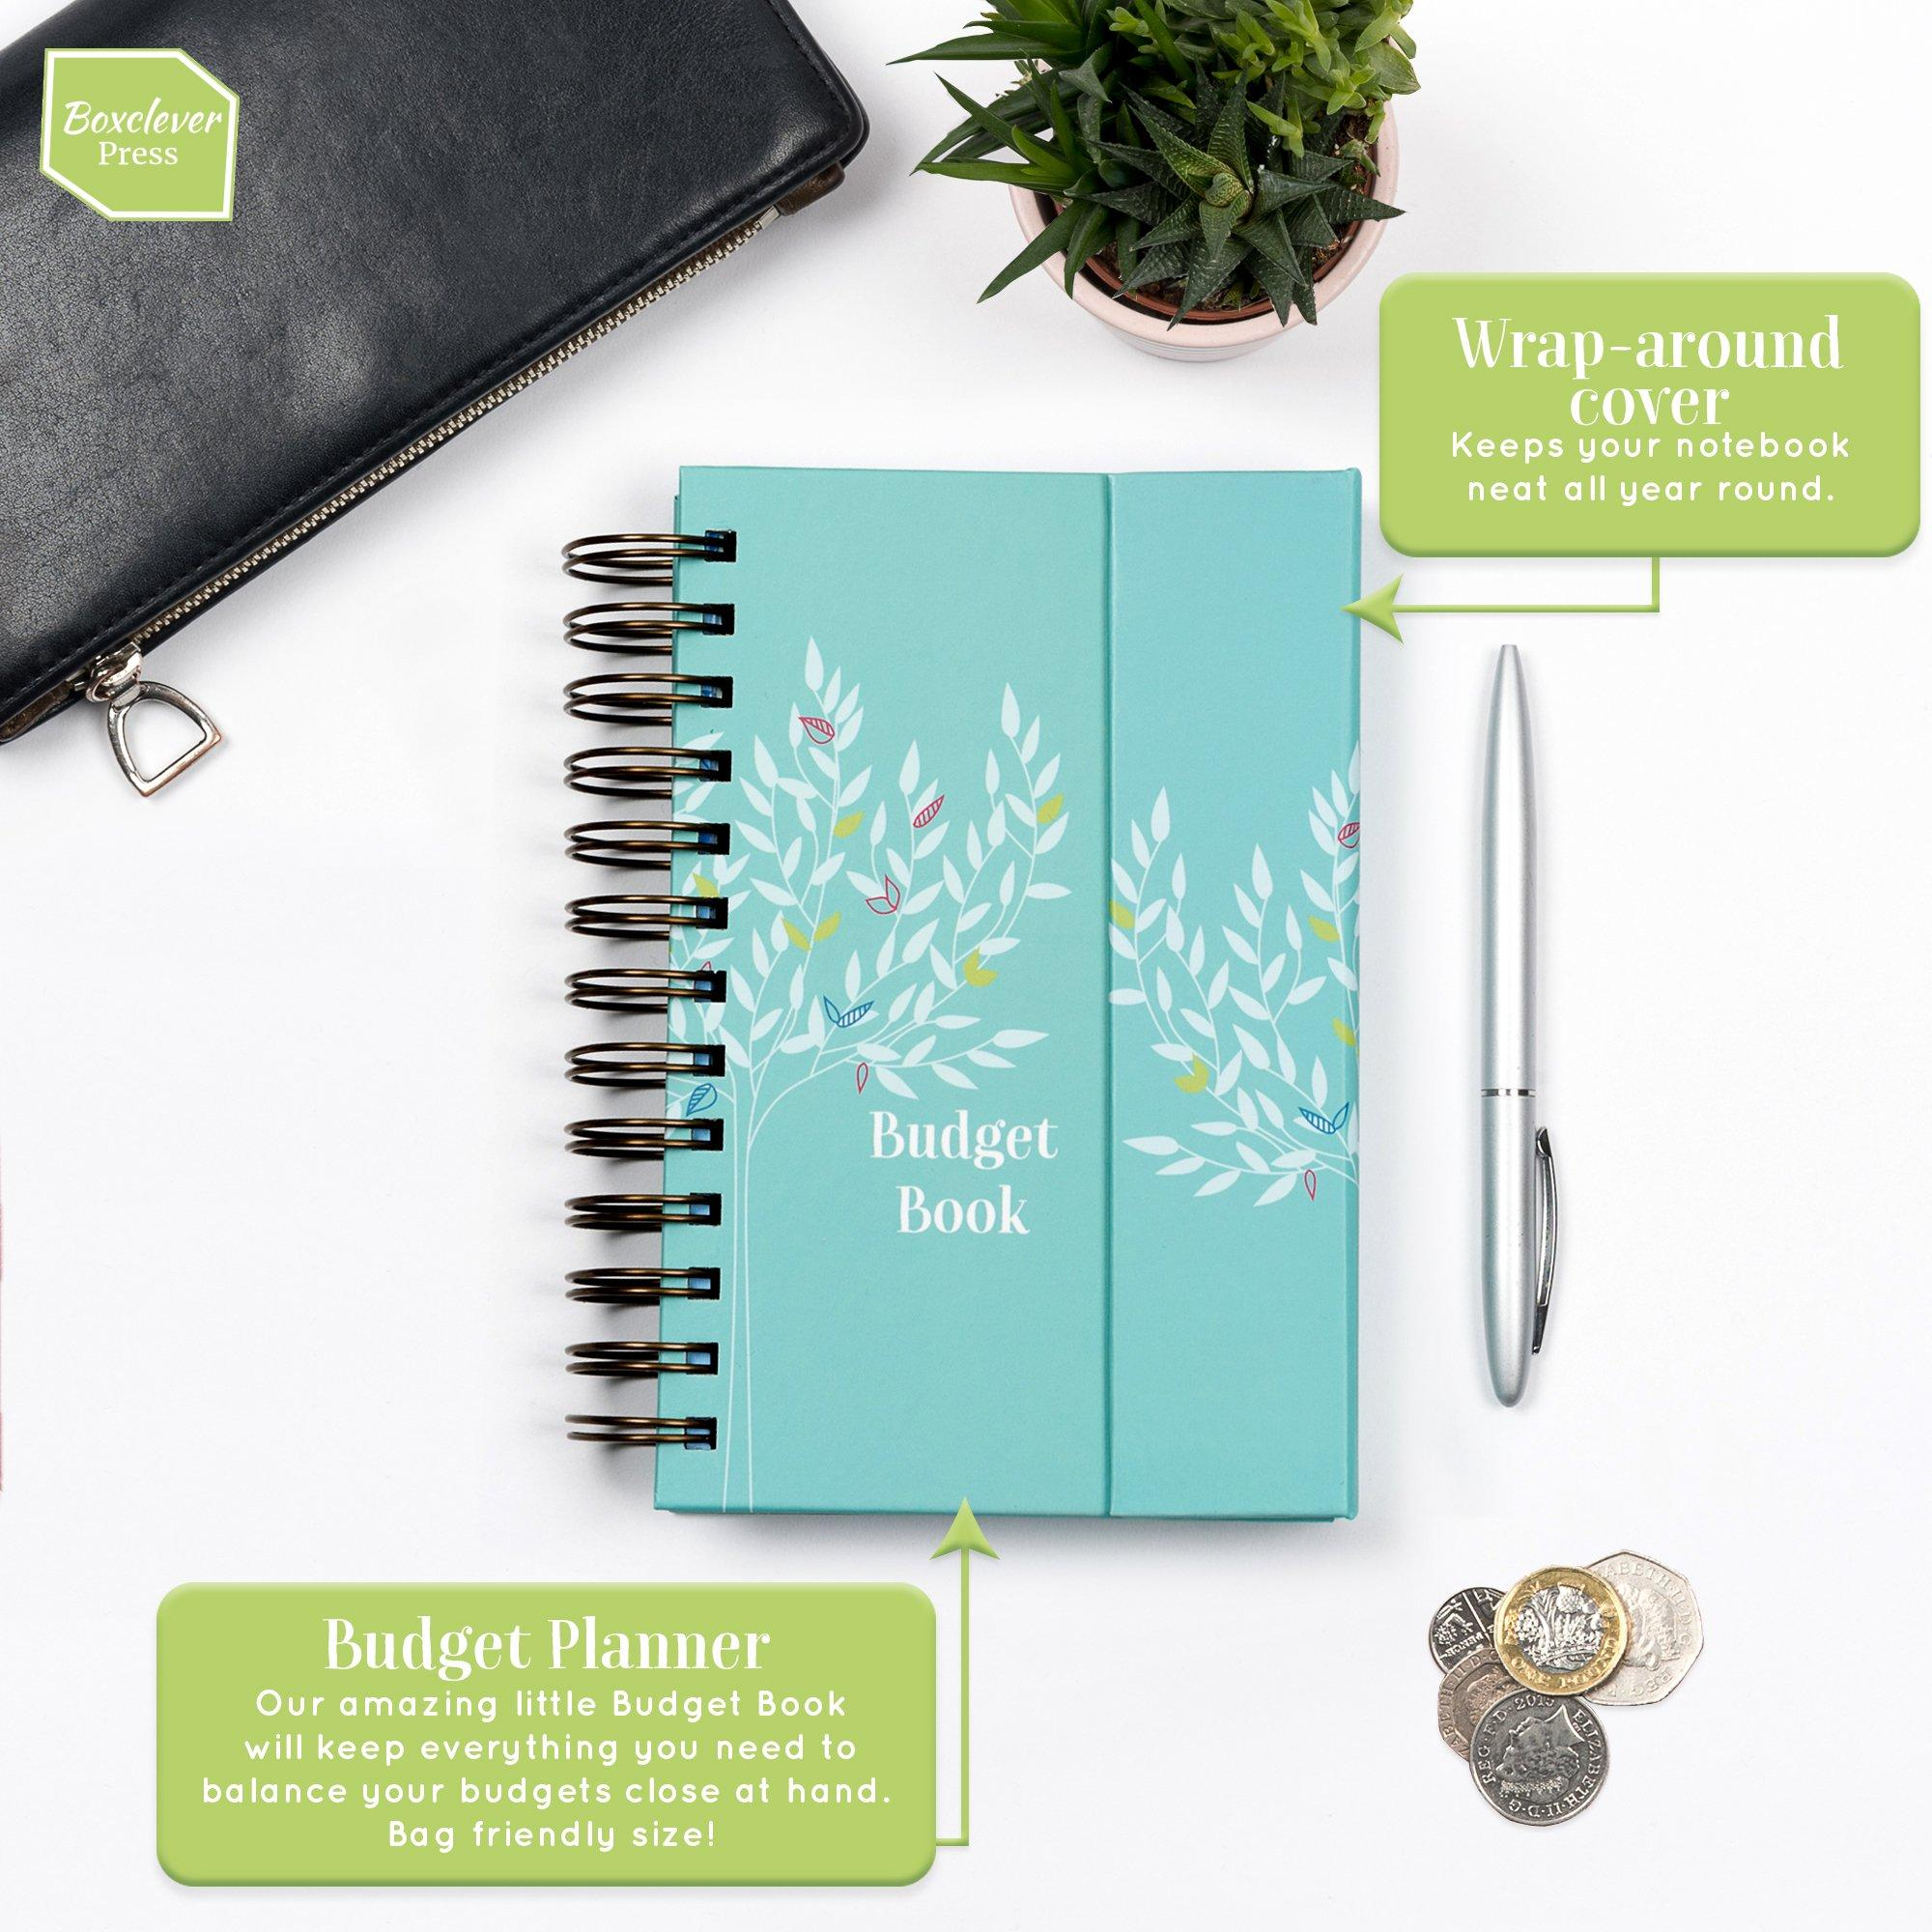 boxclever press budget book  monthly bill organizer  u0026 budget planner accounts